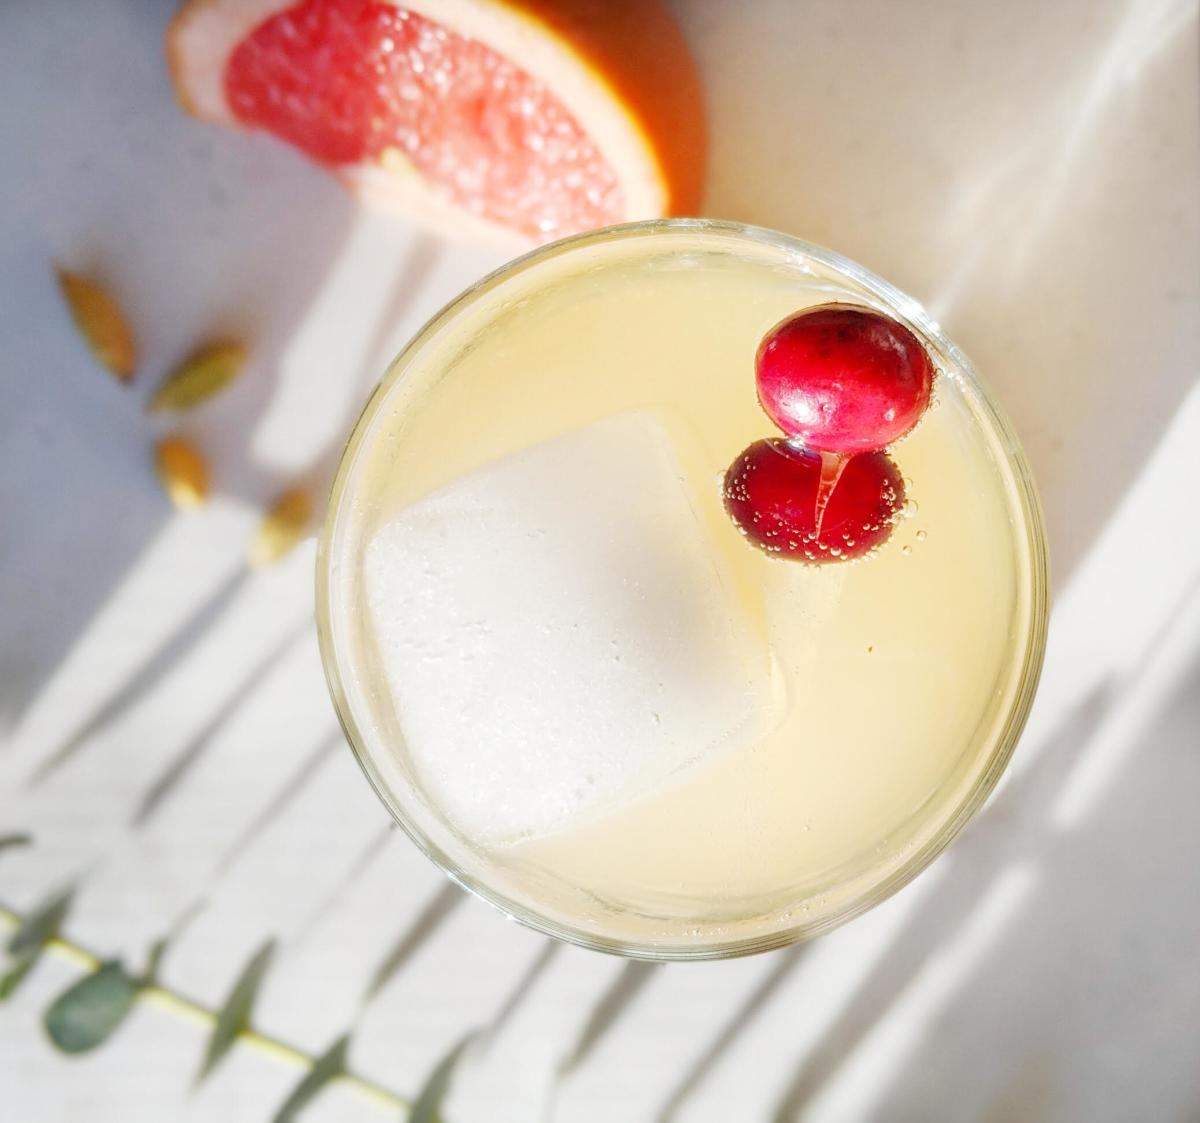 Looking for local flavors, in your favorite mocktail? Check out this tasty option, featuring Tapped Maple Syrup and Siren Shrubs.